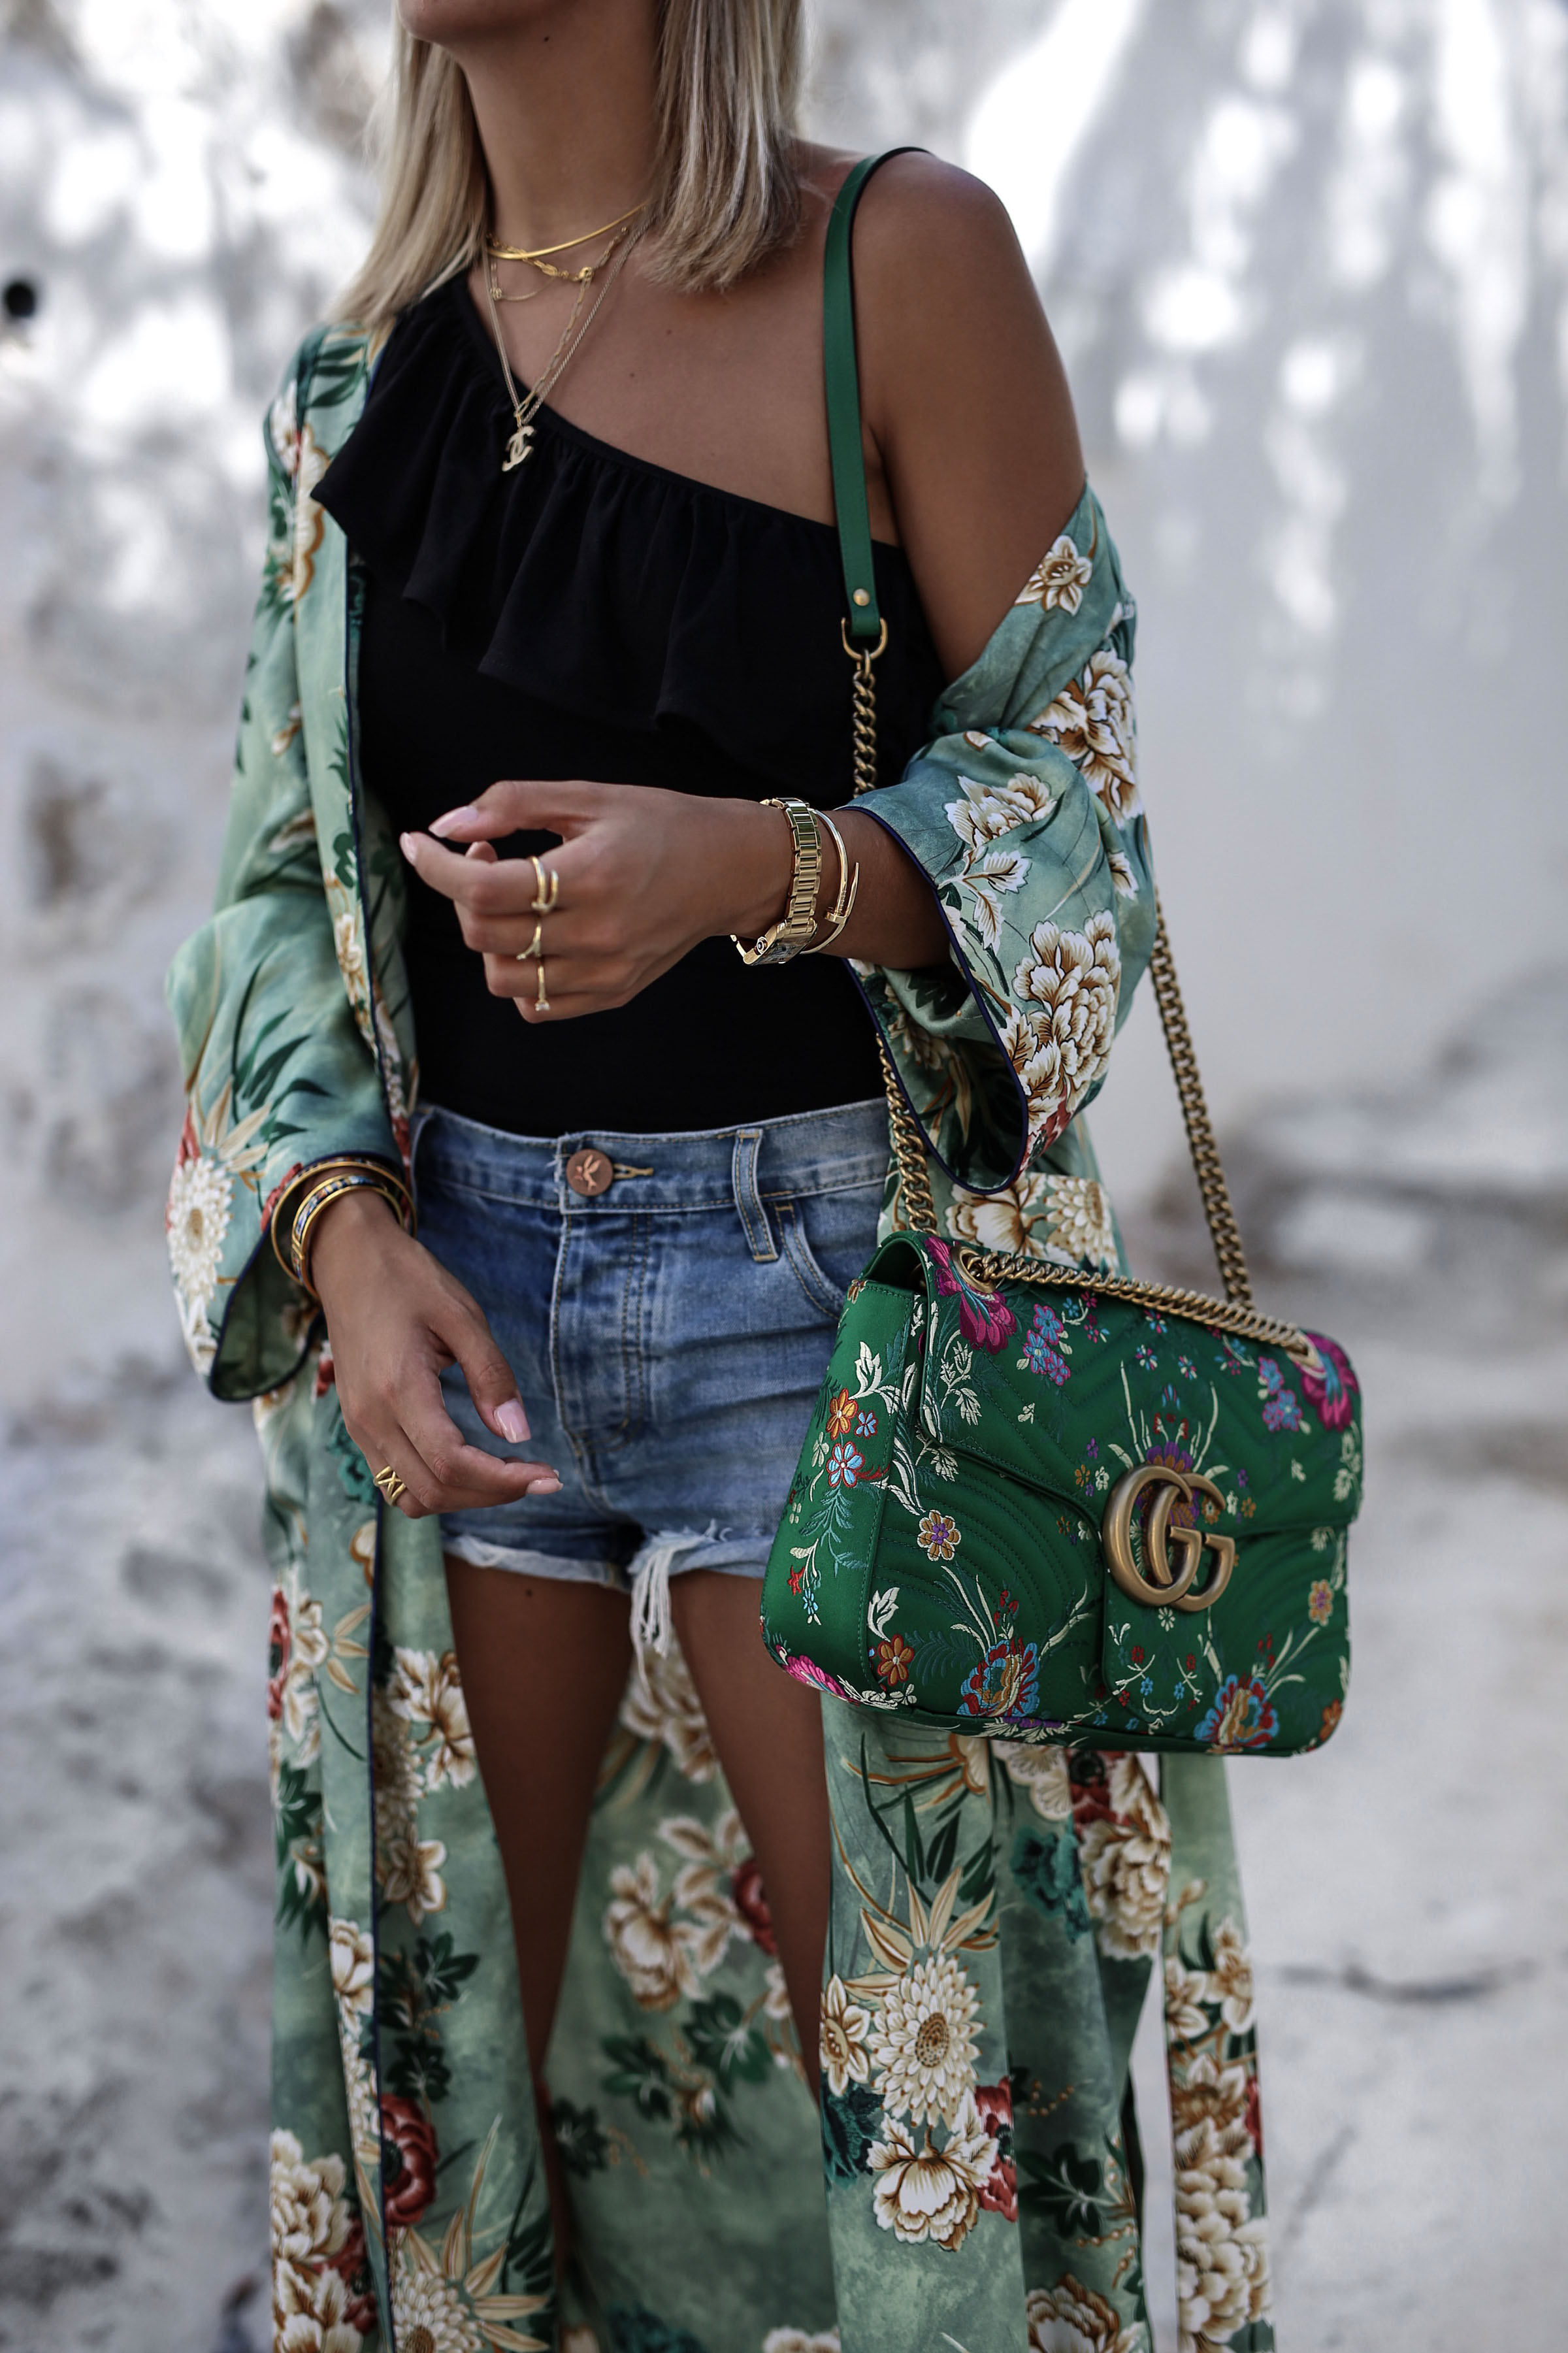 878dbcd1088 gucci marmont bag net-a-porter one teaspoon shorts  Ibiza altstadt gucci marmont bag Chanel necklace aylin koenig kette  Givenchy slides shoes ...